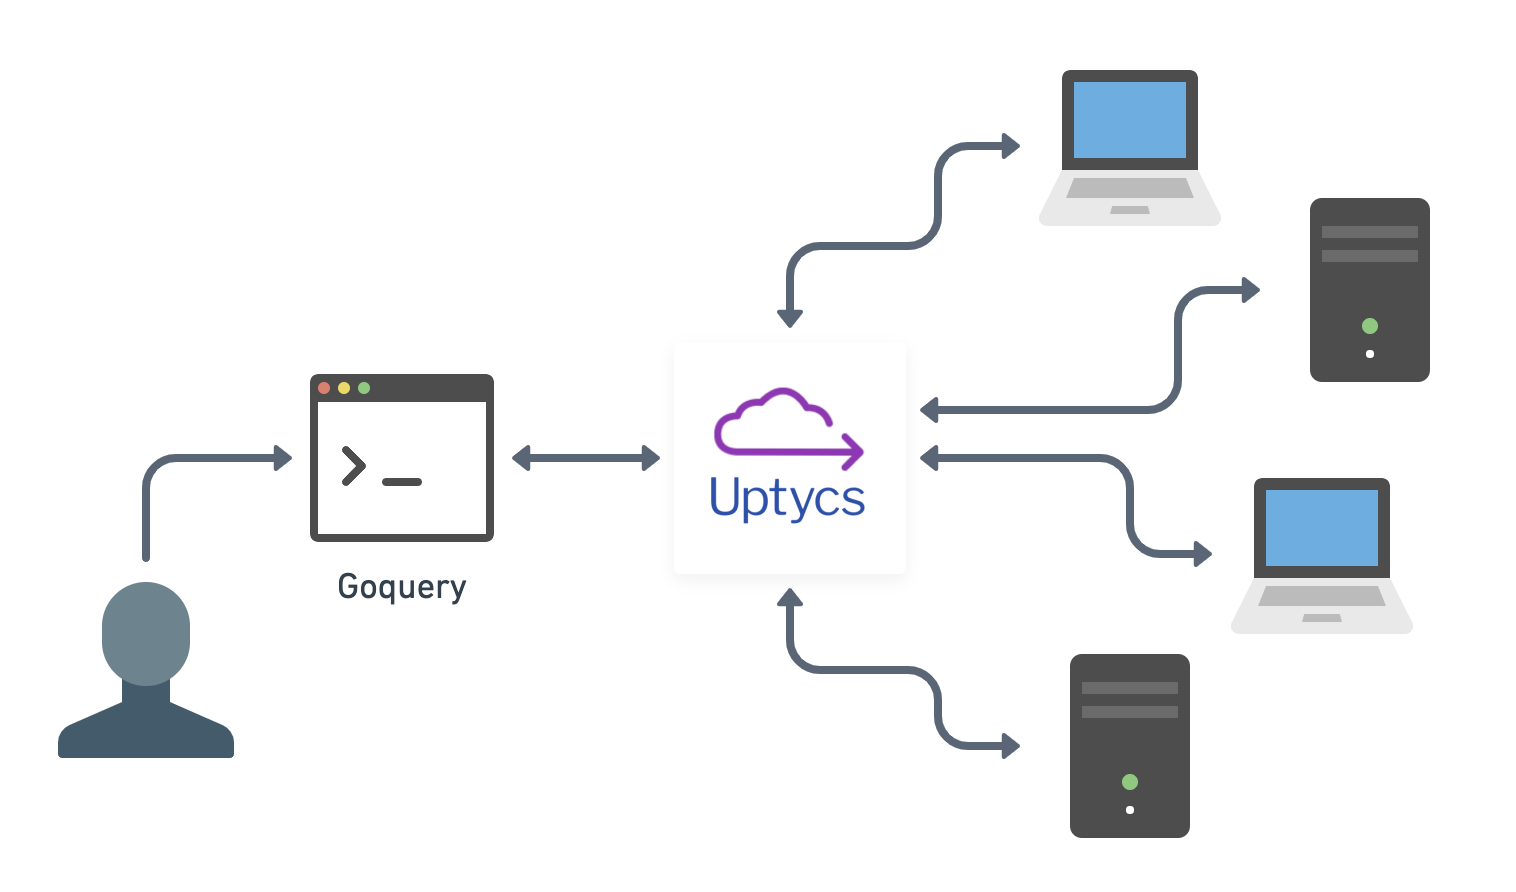 Fast and secure remote investigation with goquery and Uptycs